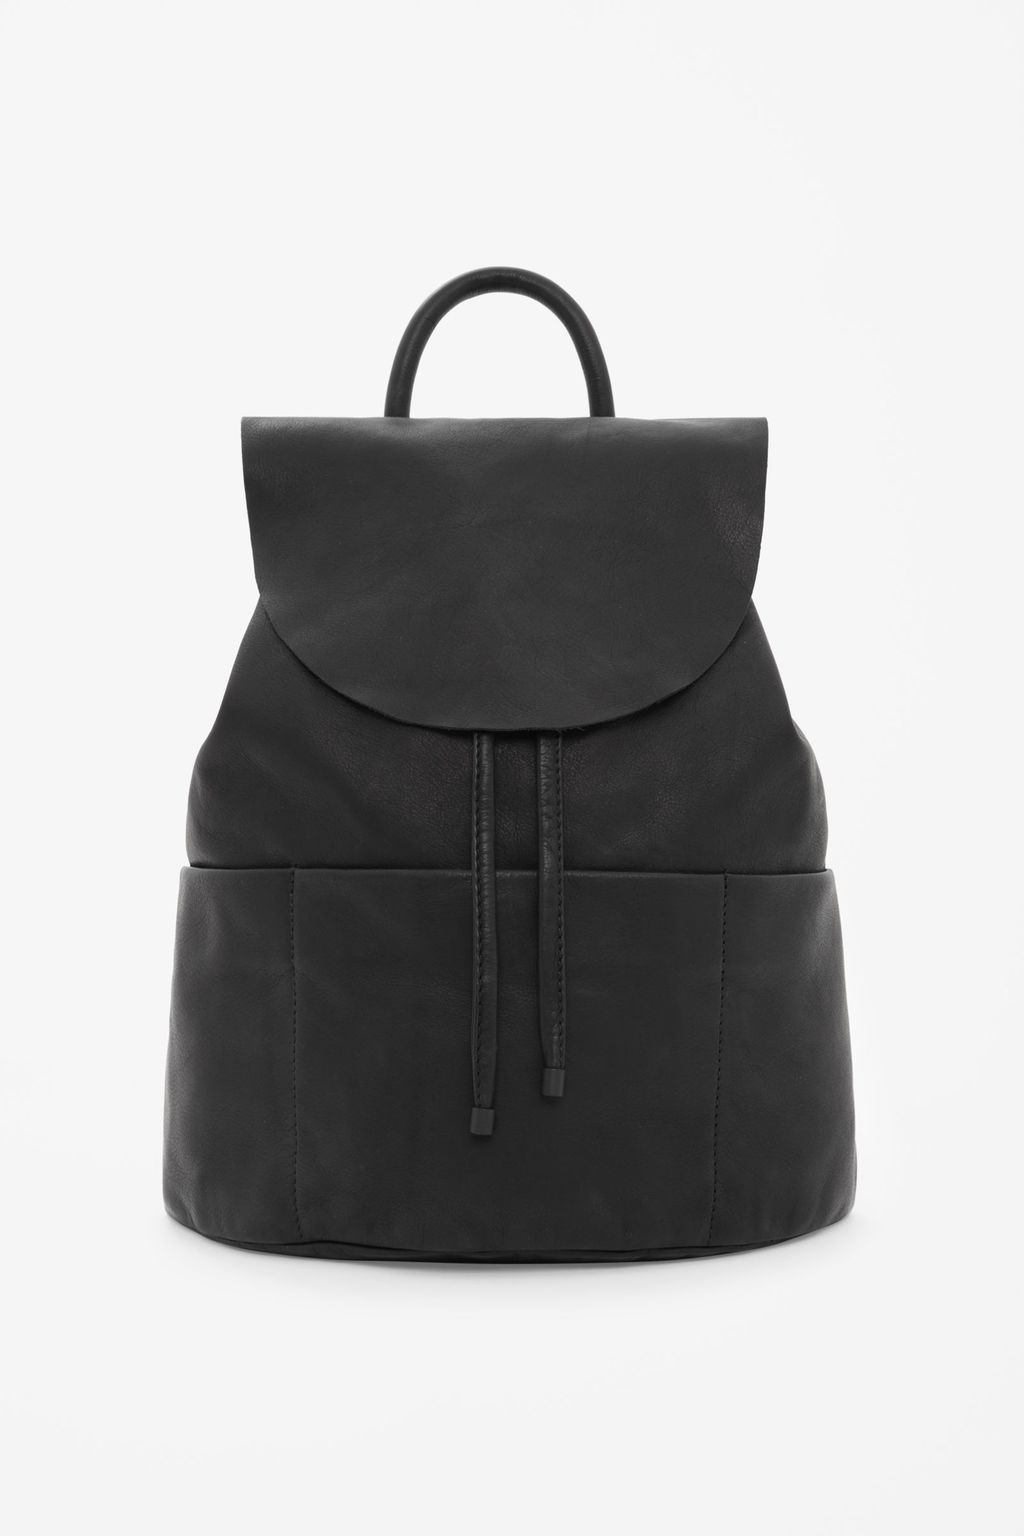 Unstructured Leather Backpack - predominant colour: black; occasions: casual, creative work; type of pattern: standard; style: rucksack; length: rucksack; size: standard; material: leather; pattern: plain; finish: plain; season: s/s 2016; wardrobe: basic